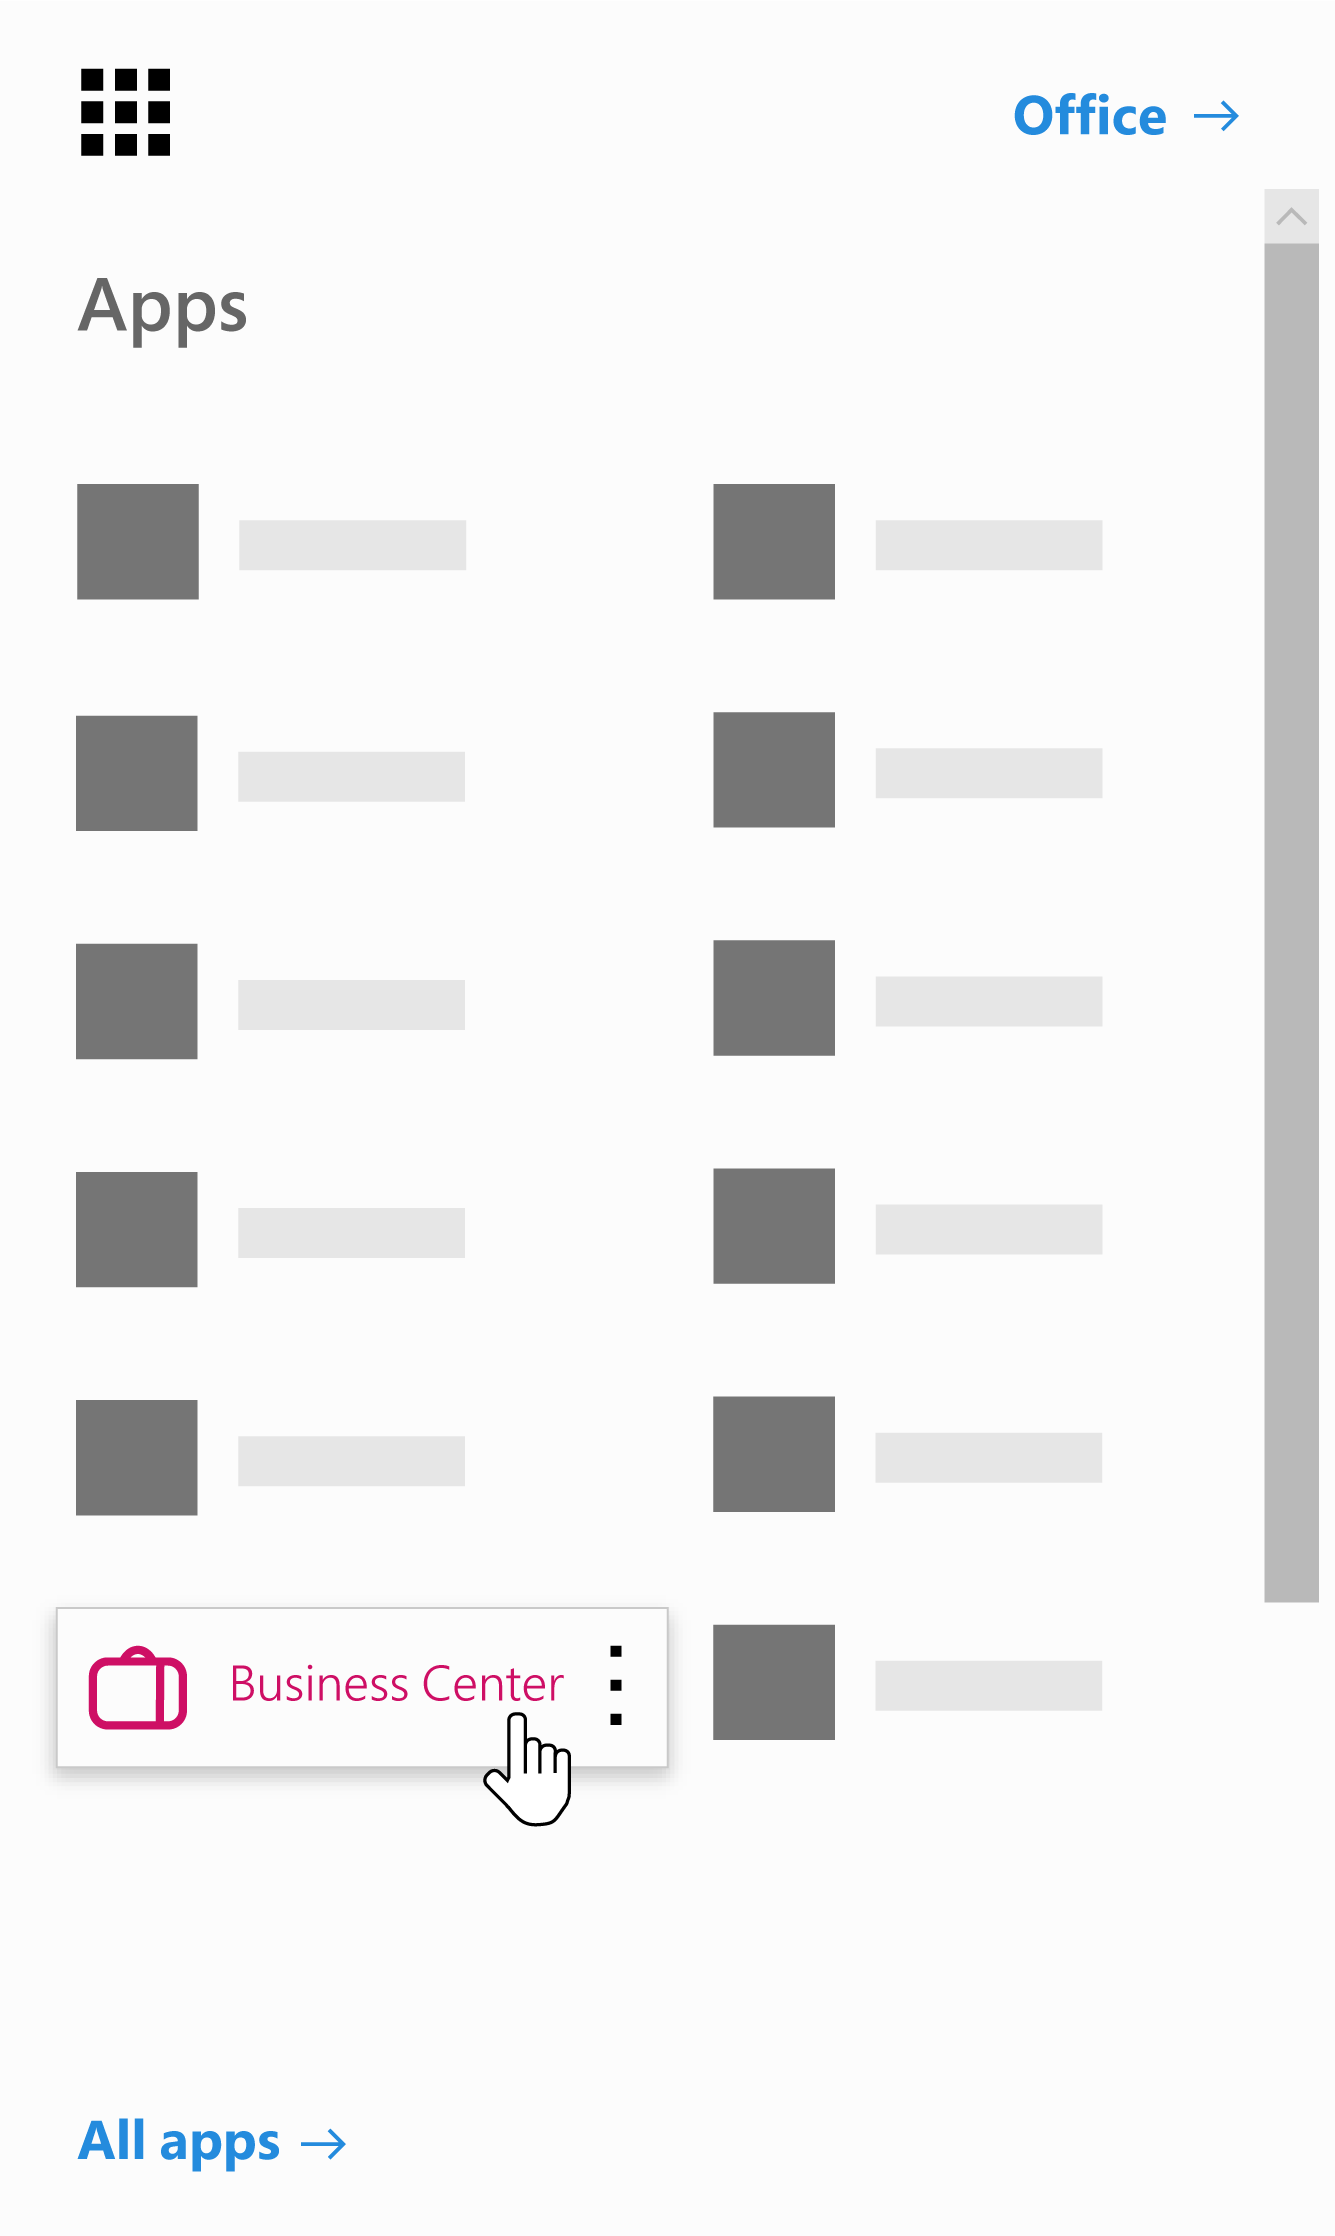 The Office 365 app launcher with the Business Center app highlighted